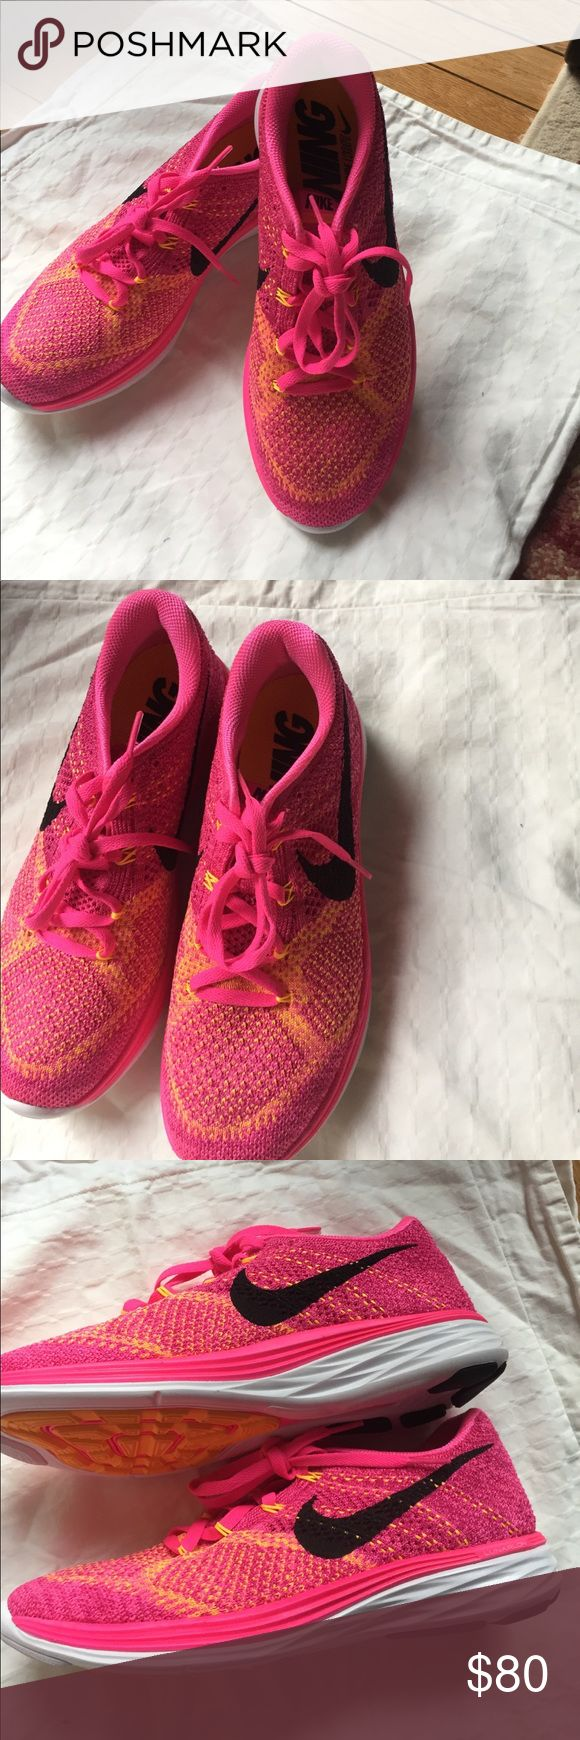 Nike Running Shoes Pink and orange neon running shoes. Lunarlon soles very light. New never worn Nike Shoes Athletic Shoes